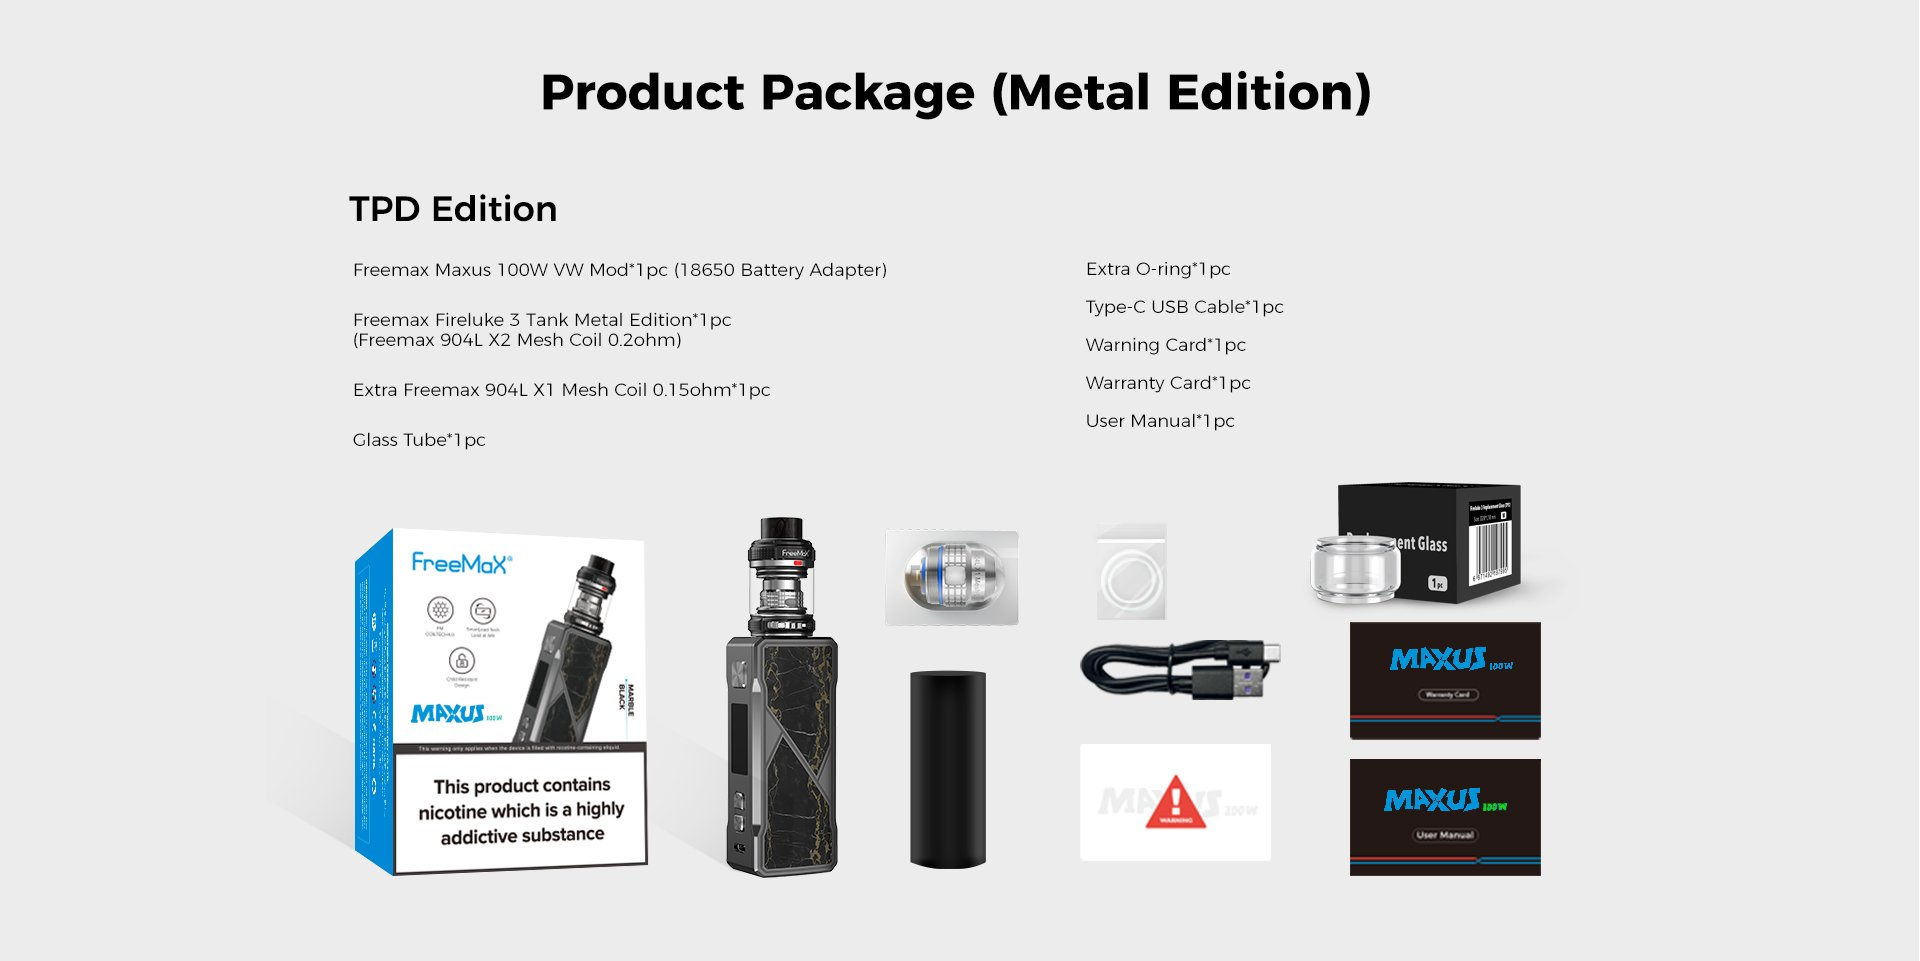 maxus-100w-product-package-metal-edition-tpd-edition